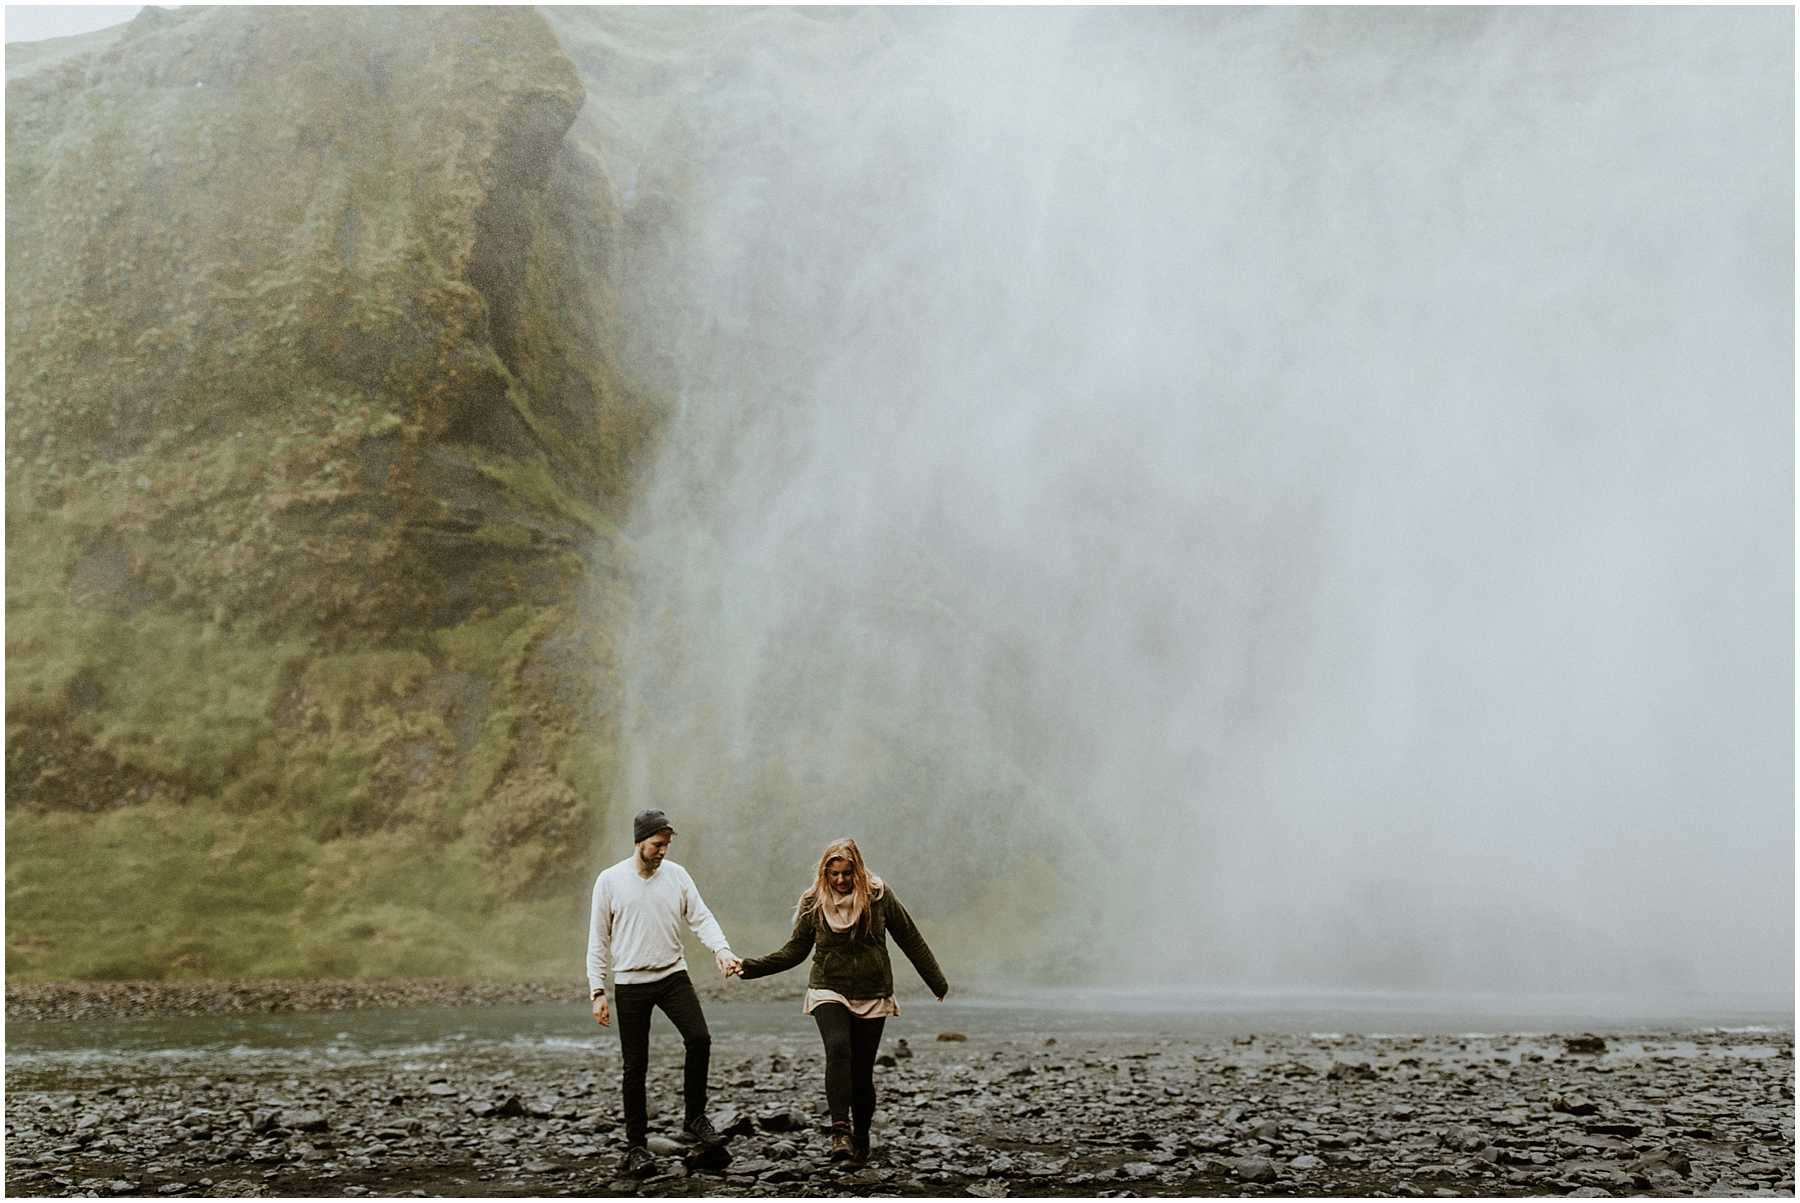 A couple on their anniversary in Iceland